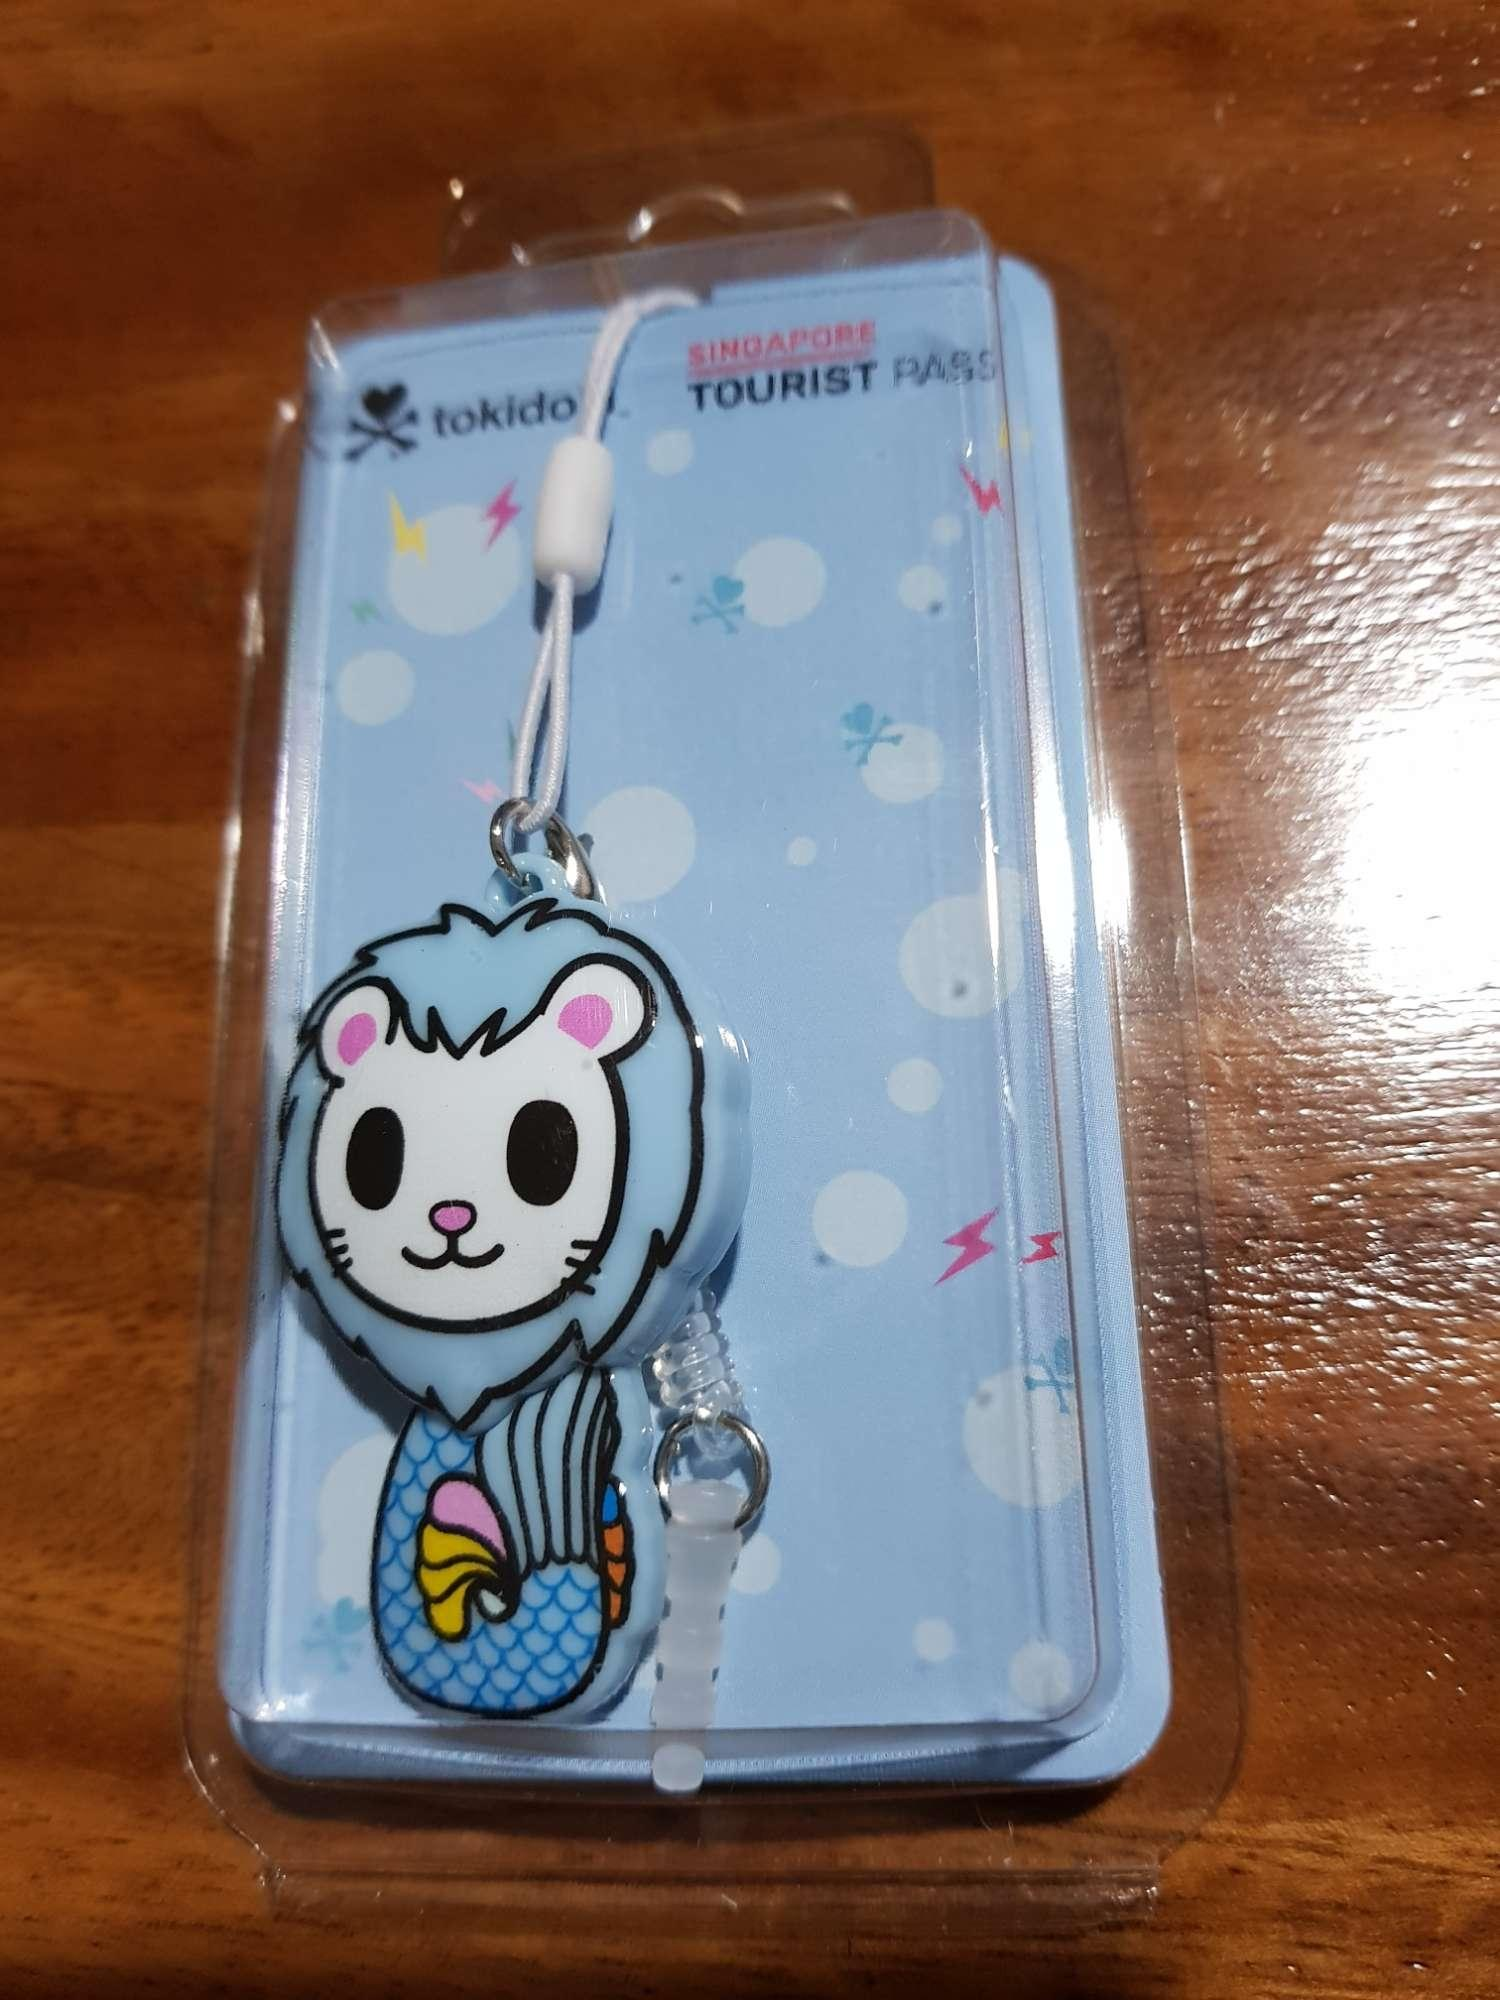 Merlion ezlink charm ($10 unlimited usage for the 1st day